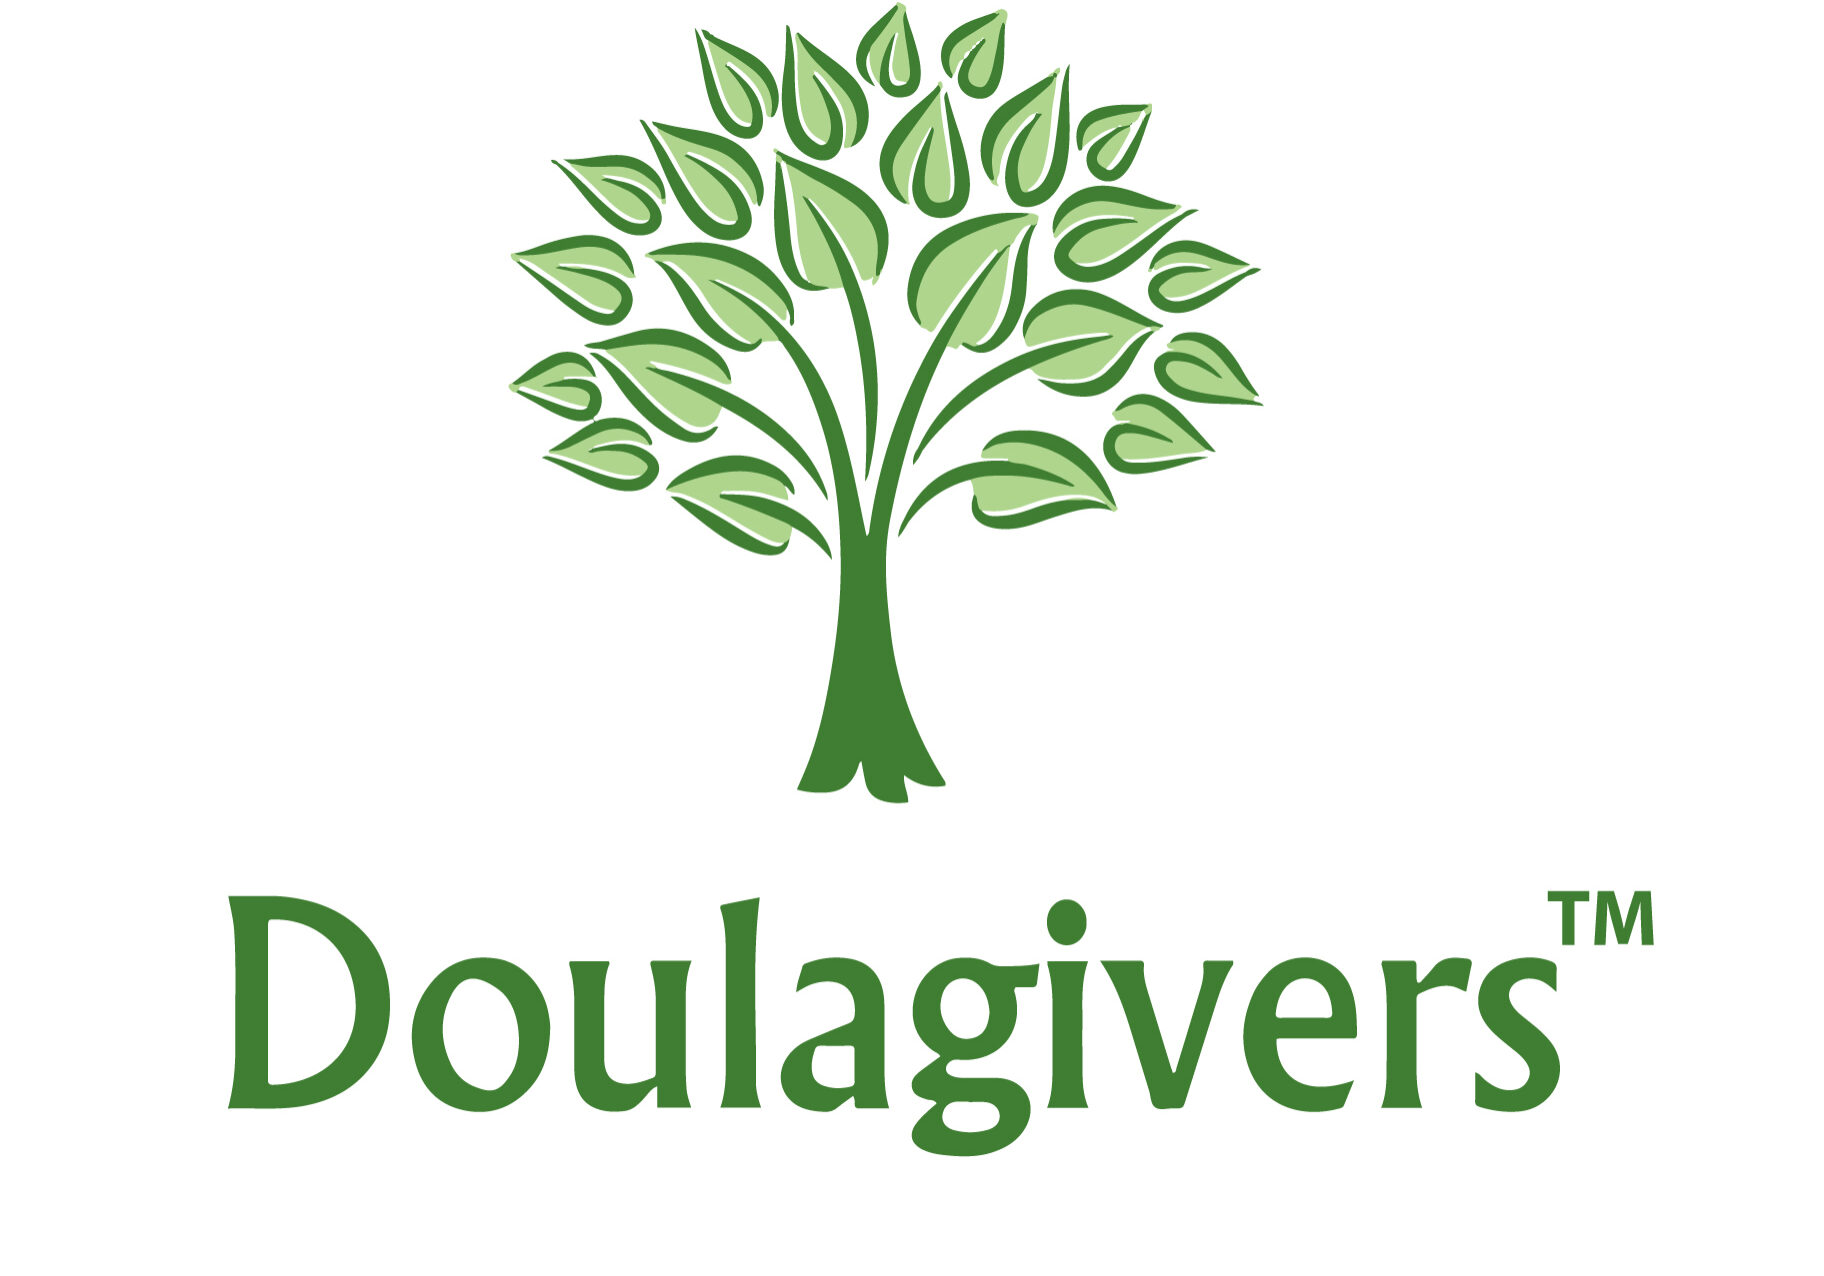 logo_doulagivers